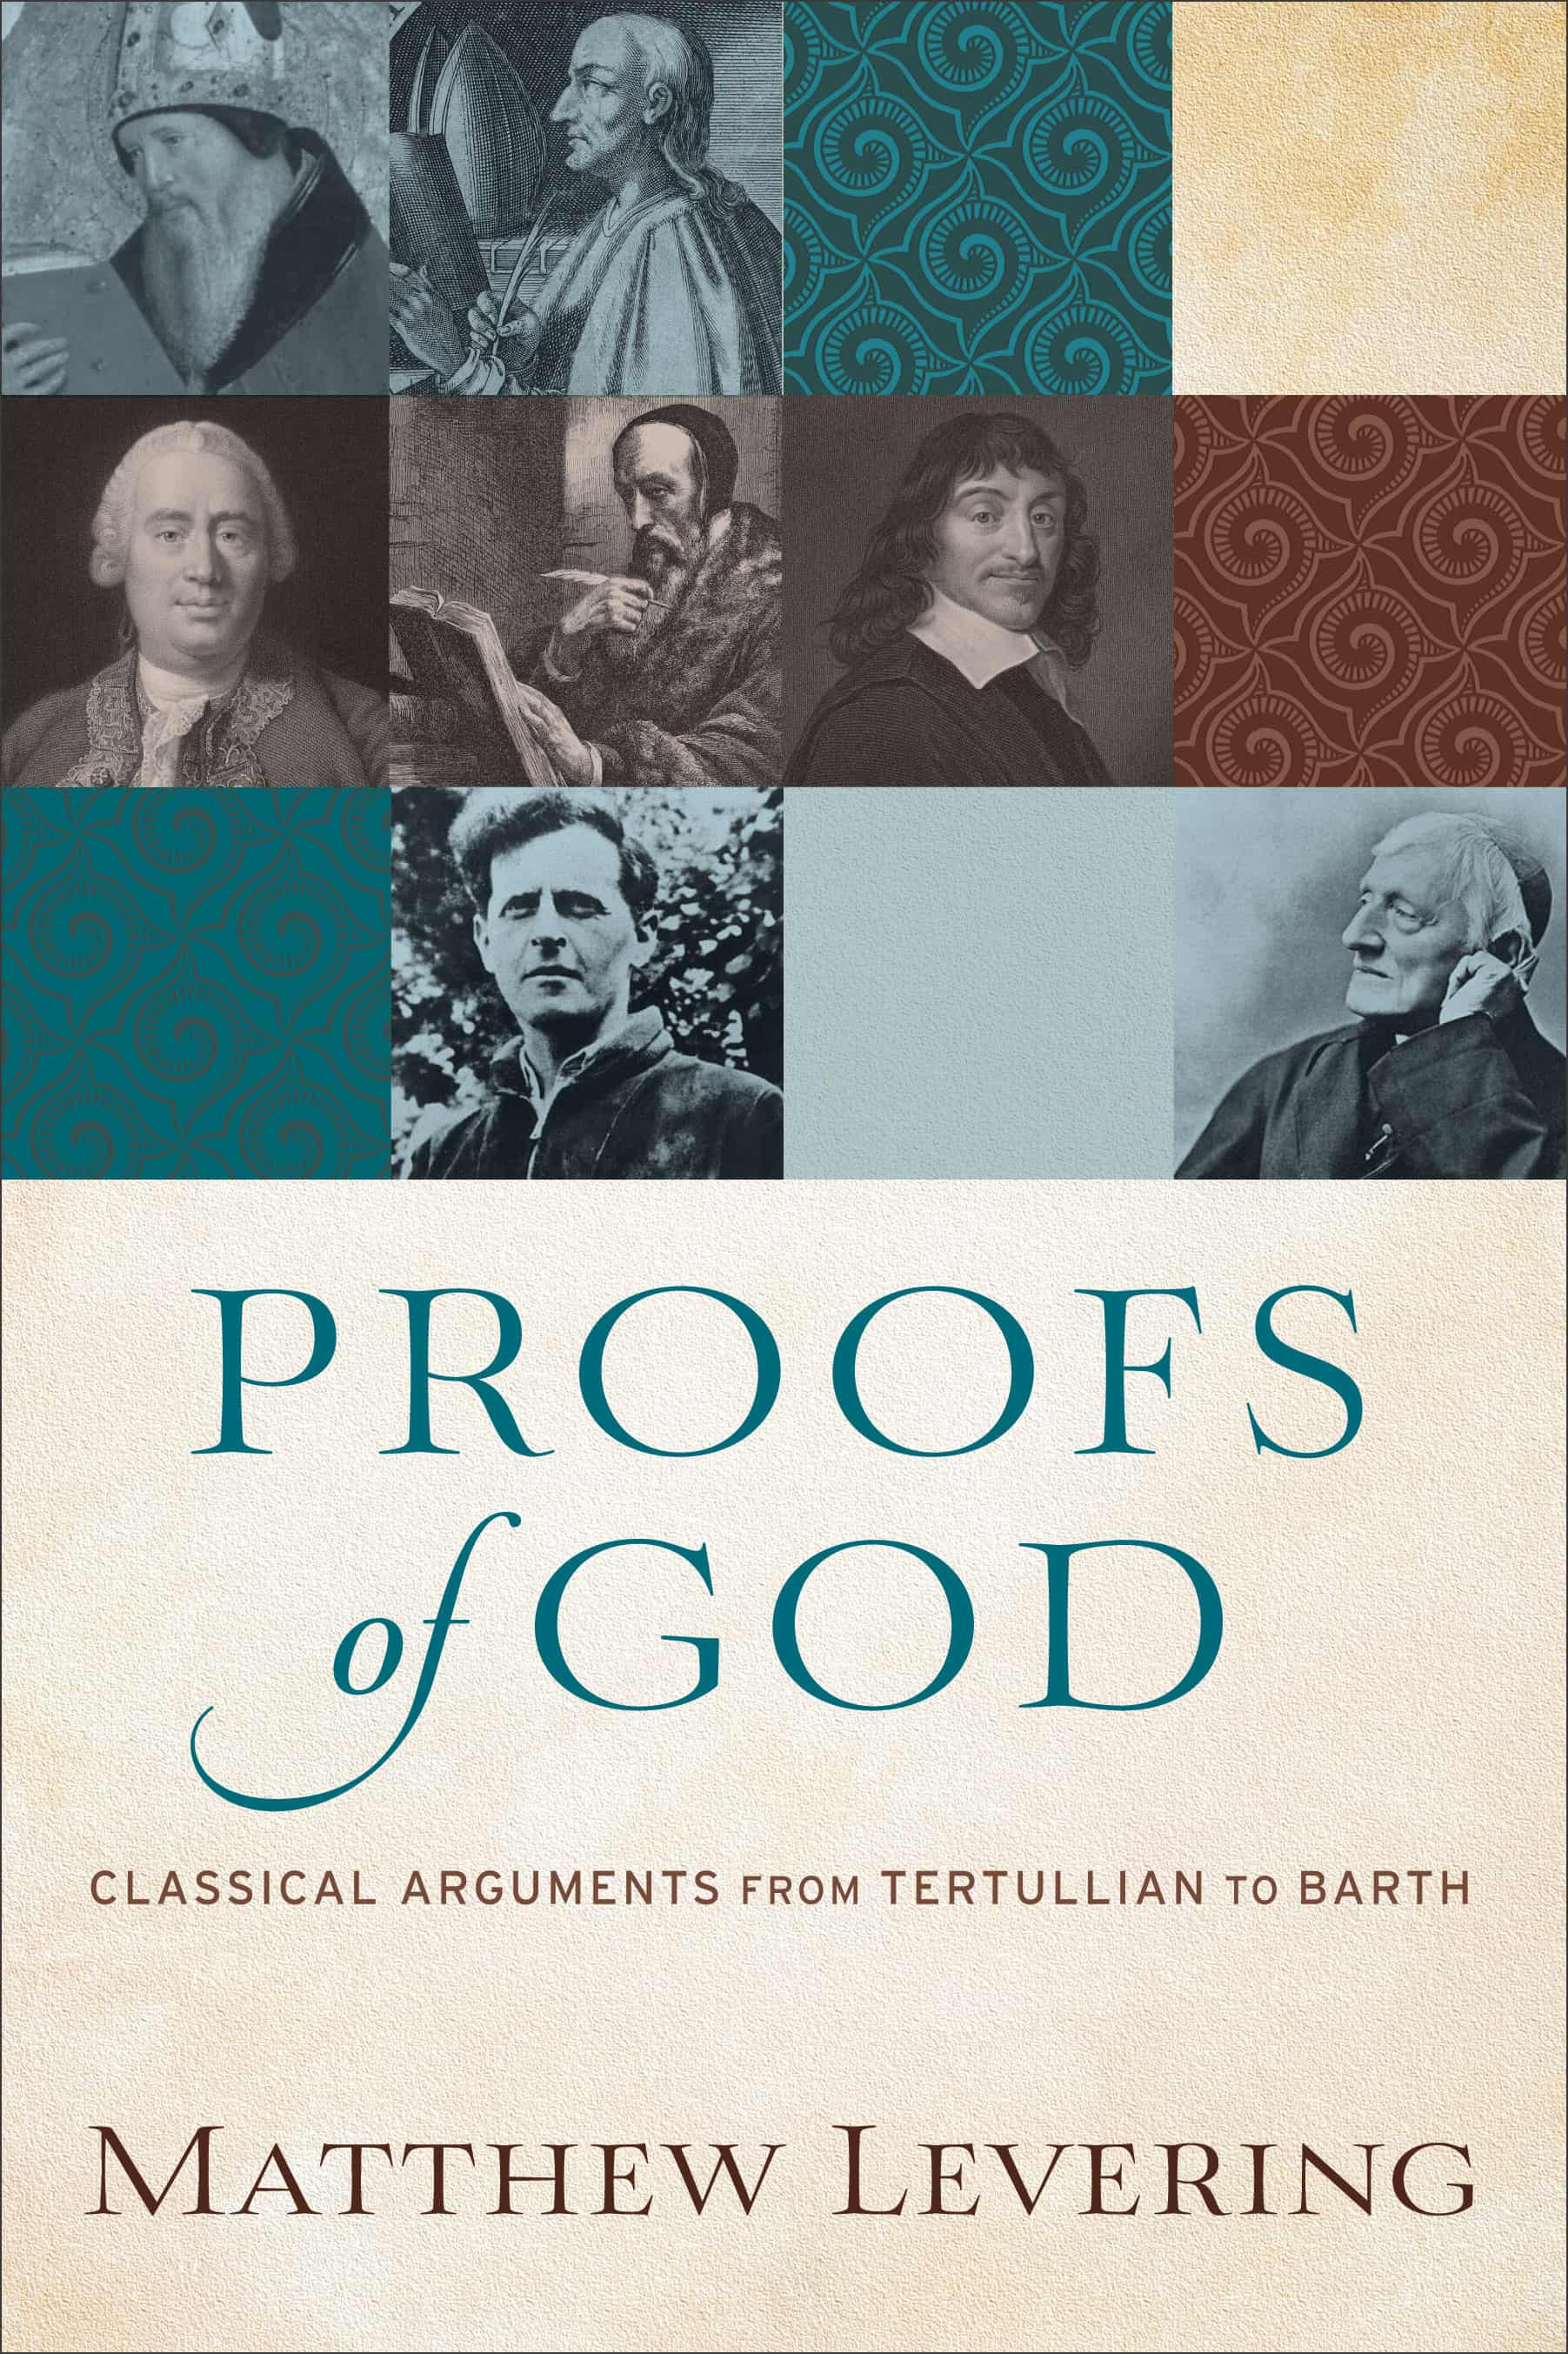 Arguments, Proofs of God: Classical Arguments from Tertullian to Barth, Servants of Grace, Servants of Grace